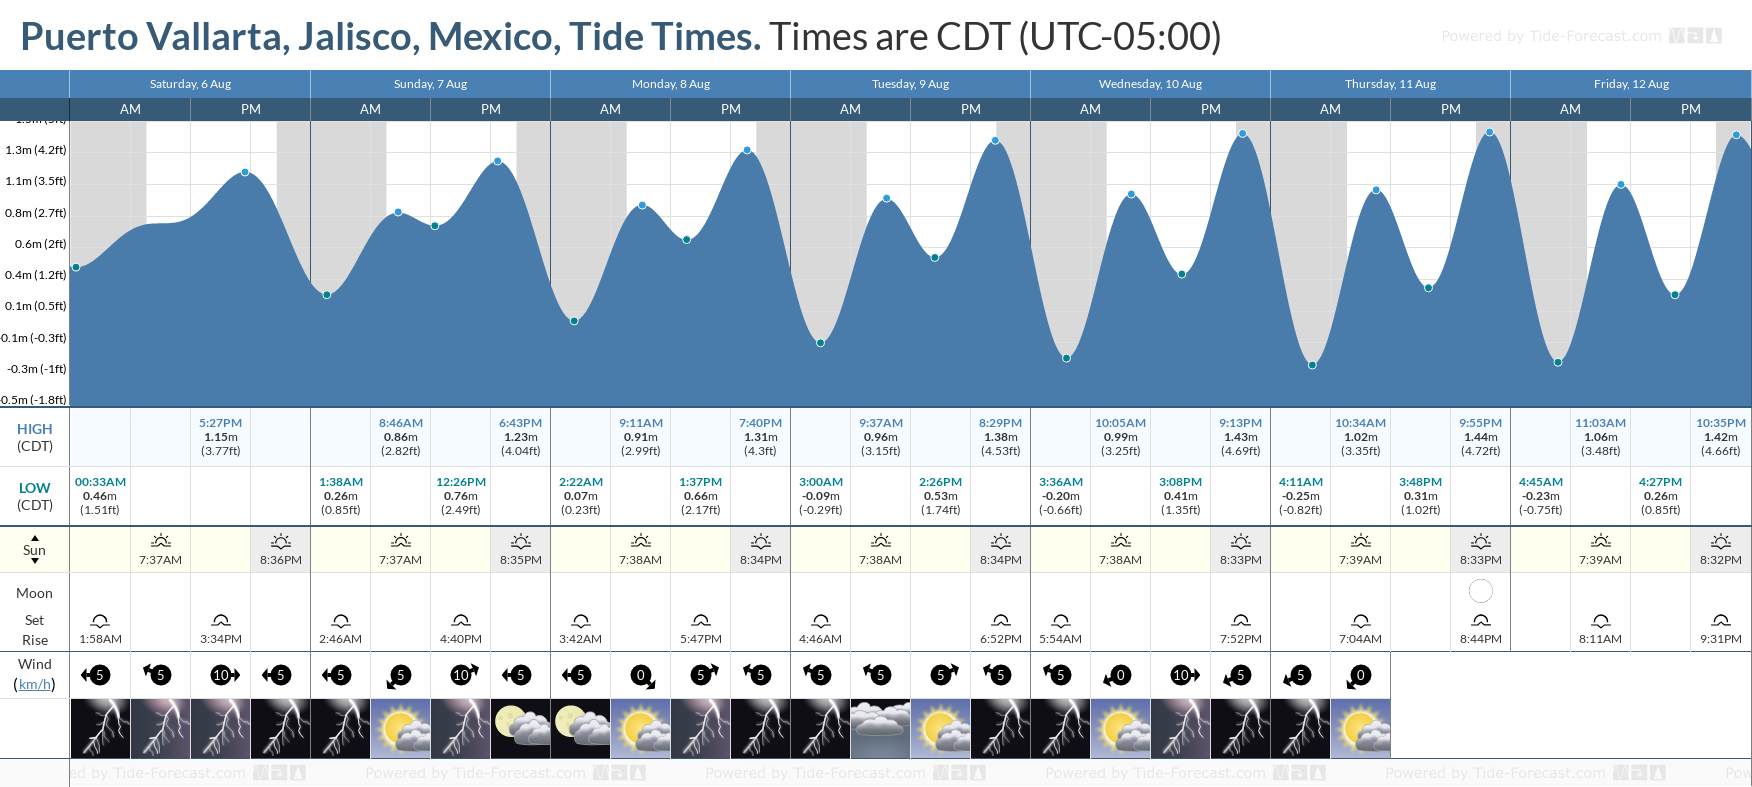 Puerto Vallarta, Jalisco, Mexico Tide Chart including high and low tide tide times for the next 7 days